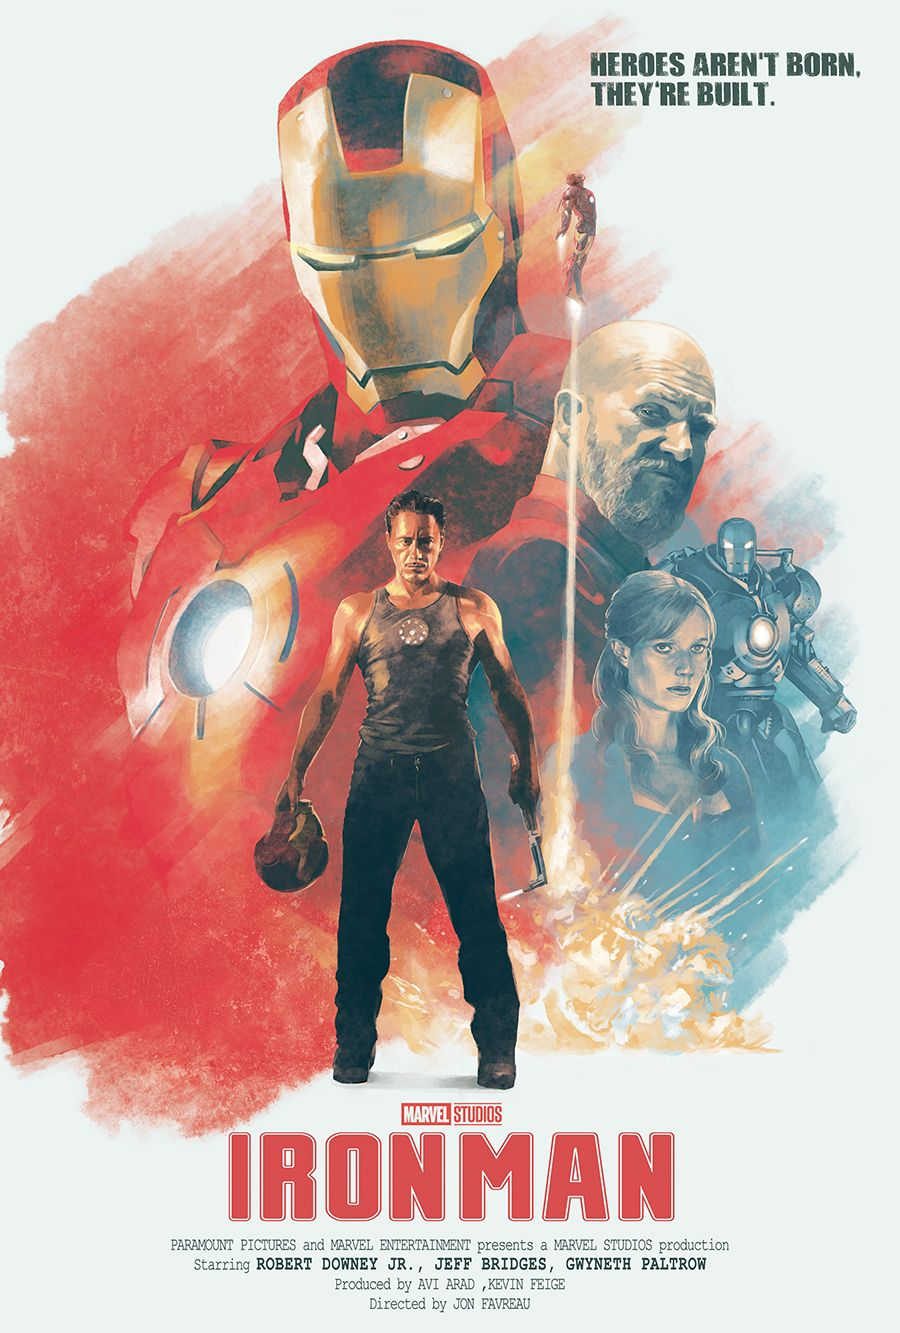 iron man alternative poster created by hans woody comics pinterest marvel movie posters. Black Bedroom Furniture Sets. Home Design Ideas